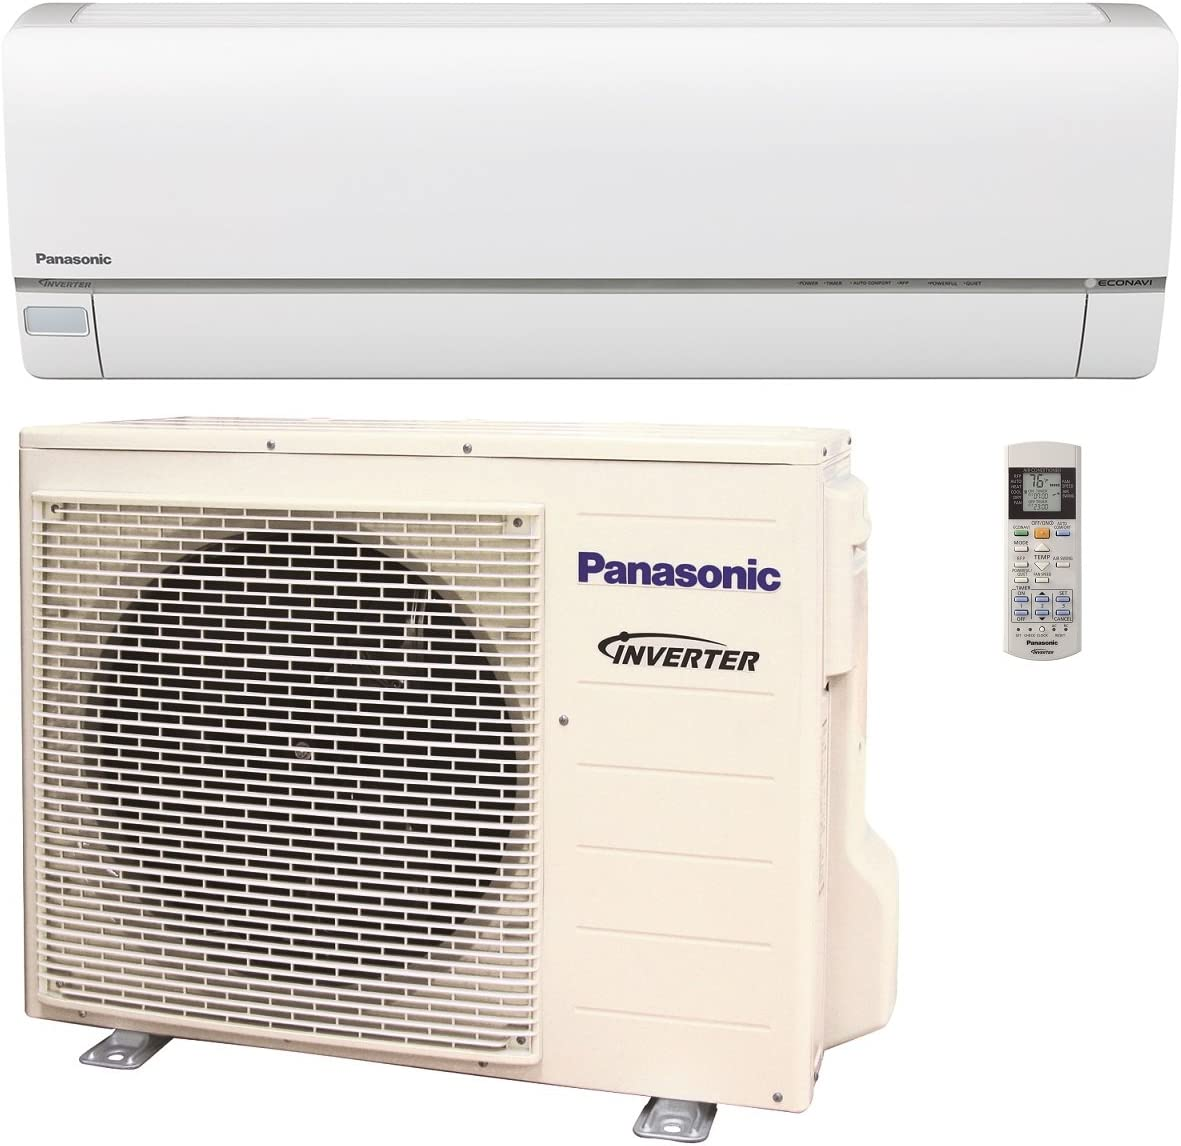 Panasonic Exterios XE 12,000 BTU Ductless Mini Split Air Conditioning and Heating System, Indoor and Outdoor Set with Wireless Remote (208/230V)